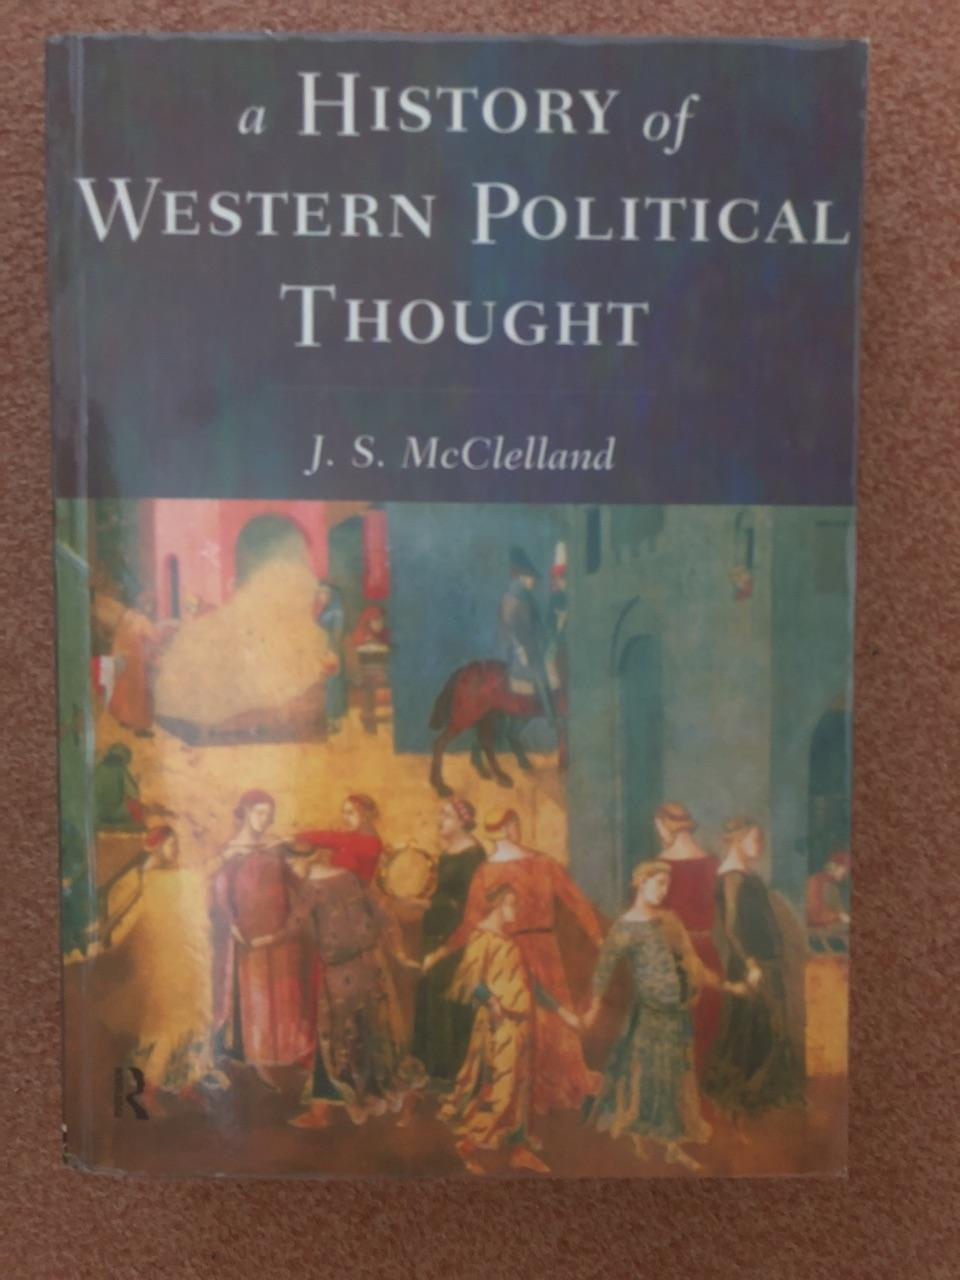 A History of Western Political Thought - S. McClelland, John, J. S. McClelland und S. McClelland J.